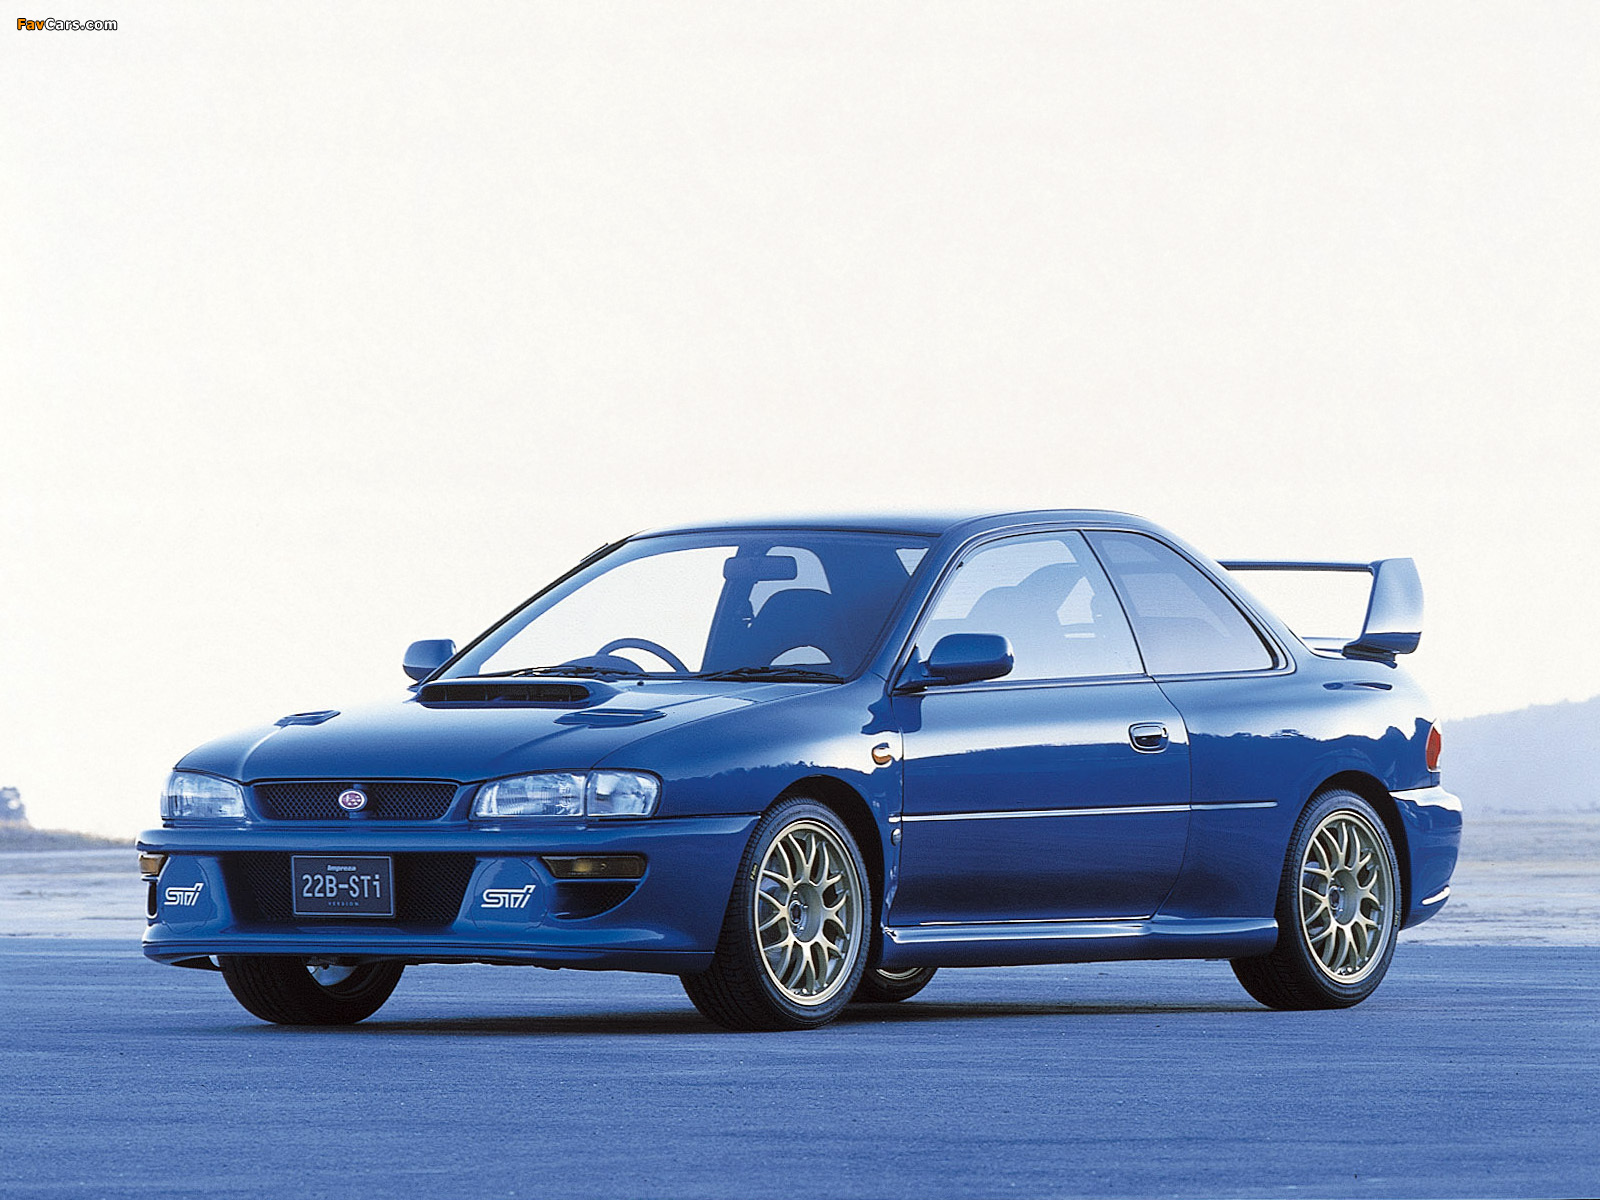 subaru impreza wrx sti 1998 model car comparisons shopping carforums. Black Bedroom Furniture Sets. Home Design Ideas